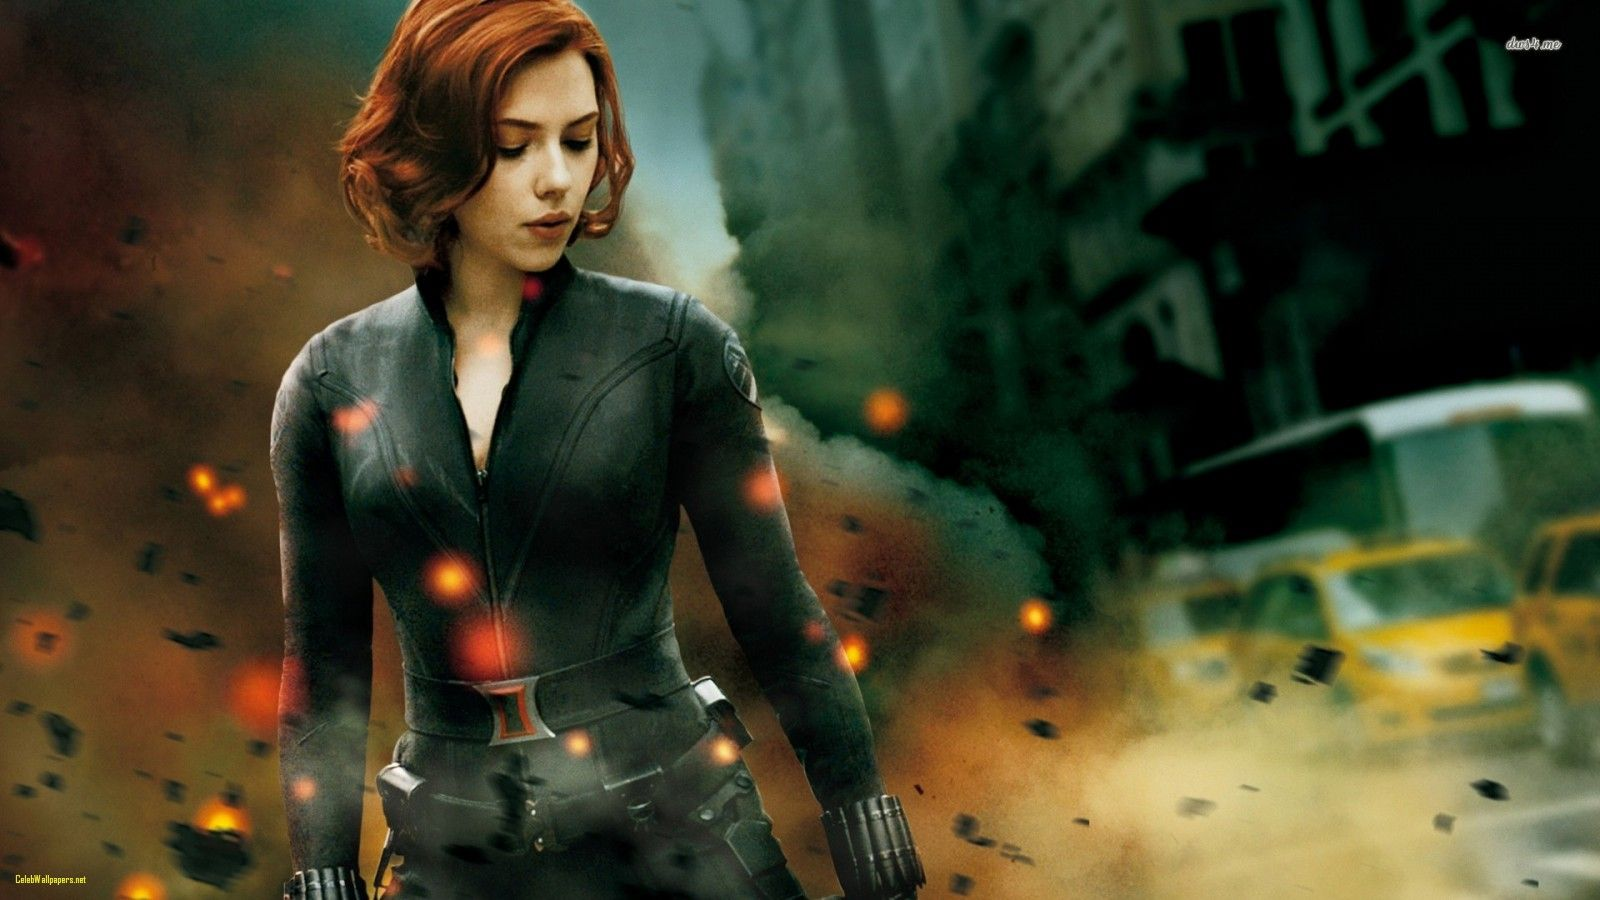 Black Widow Wallpapers Top Free Black Widow Backgrounds